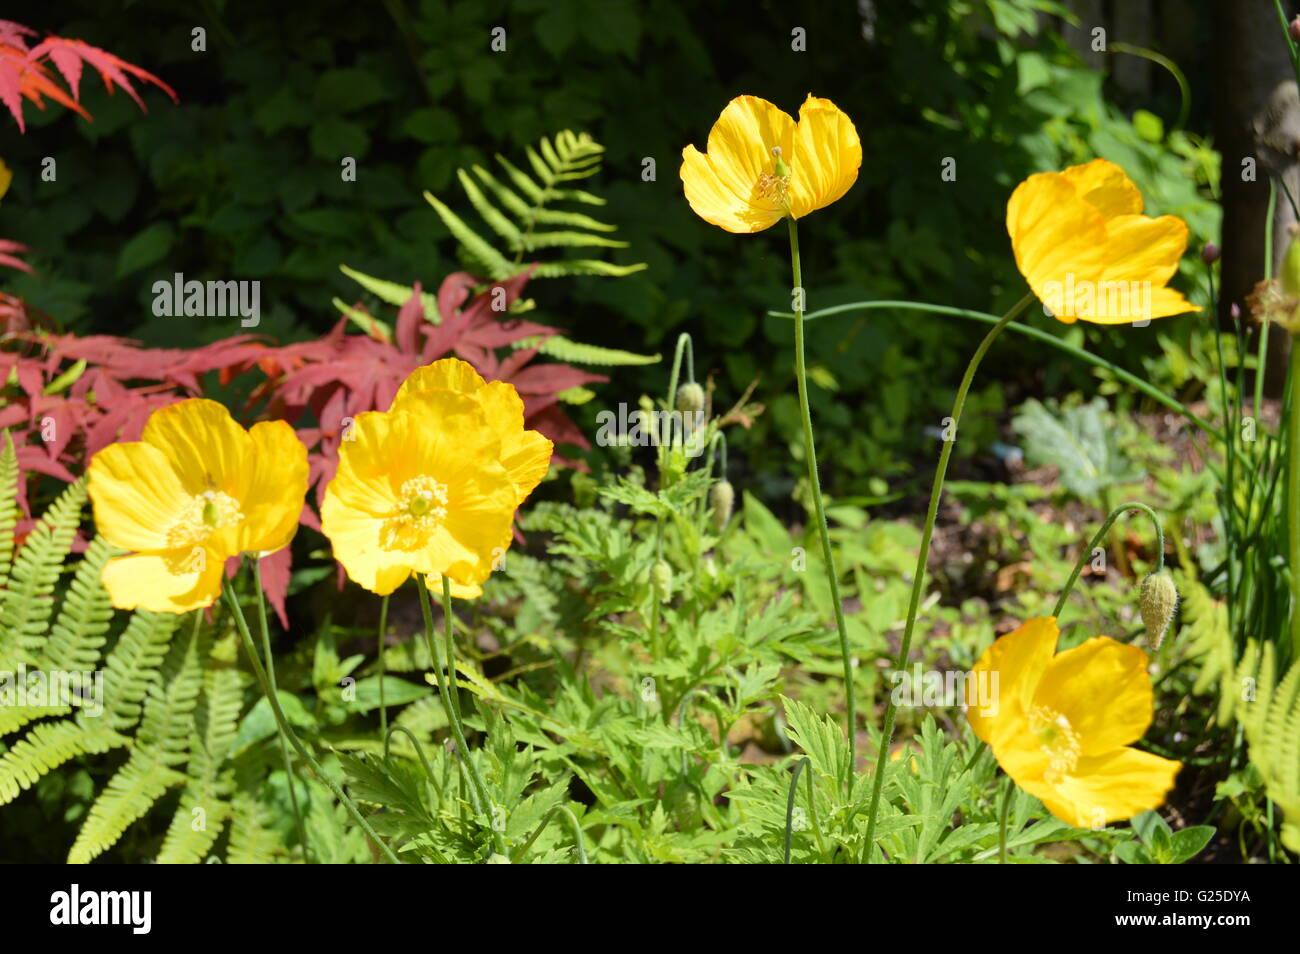 The Welsh poppy, is a perennial flowering plant in the poppy family Papaveraceae. Meconopsis cambrica Stock Photo